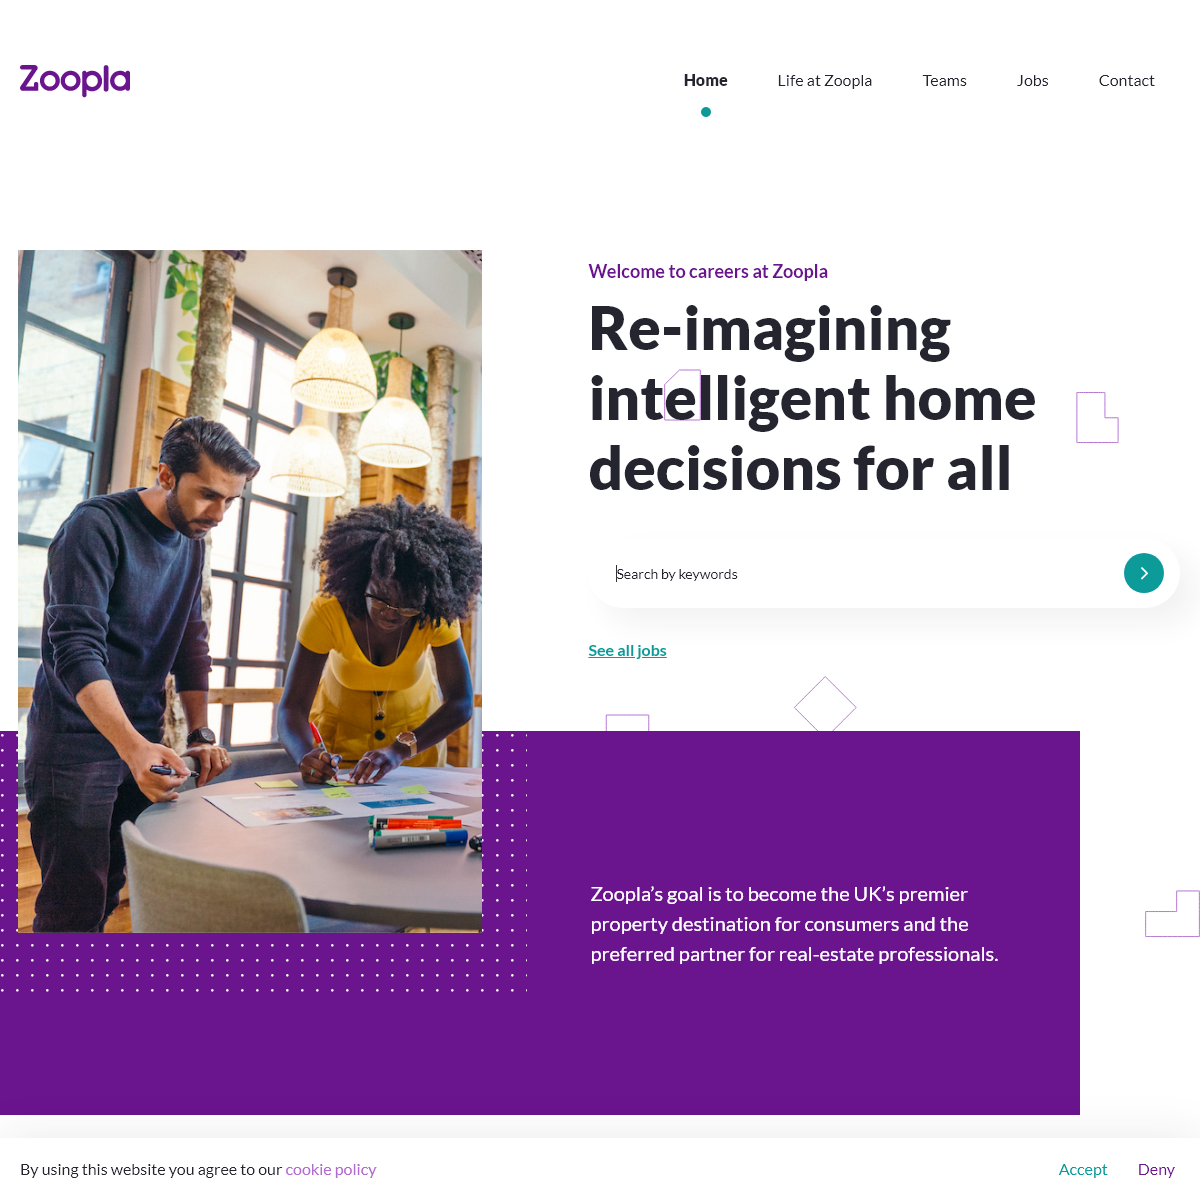 Zoopla - Re-imagining intelligent home decisions for all